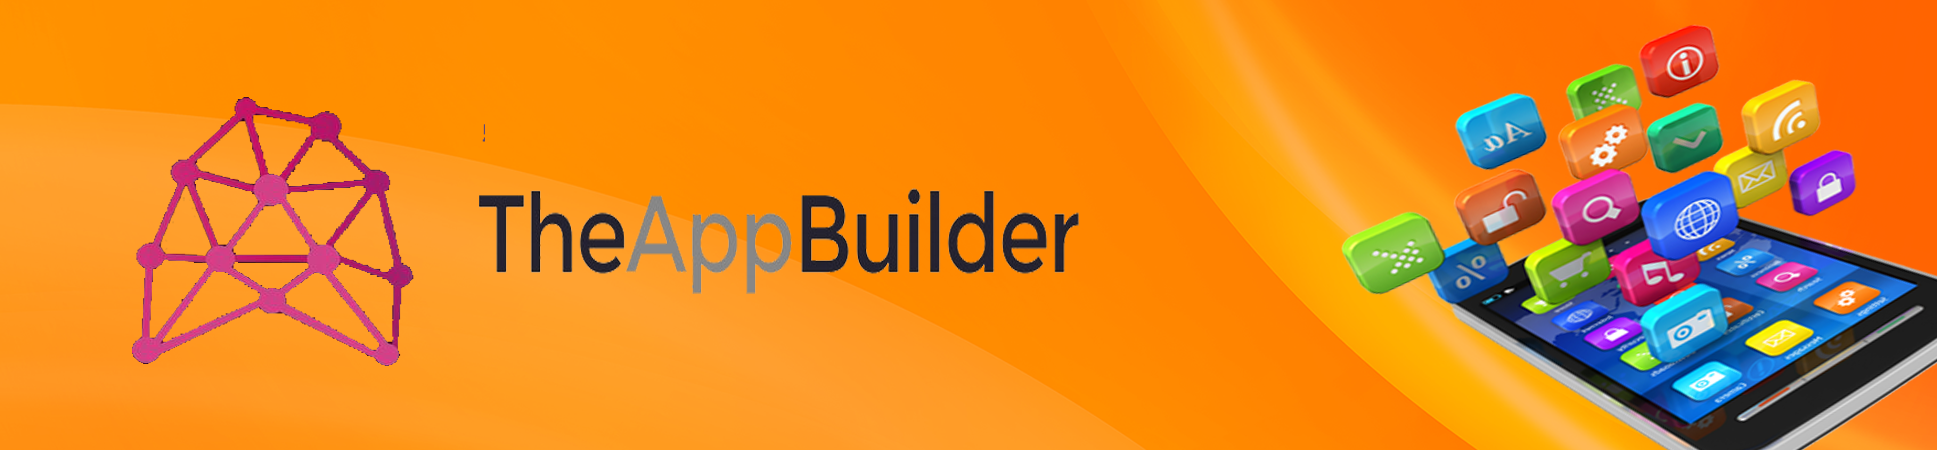 theappbuilder-development-services